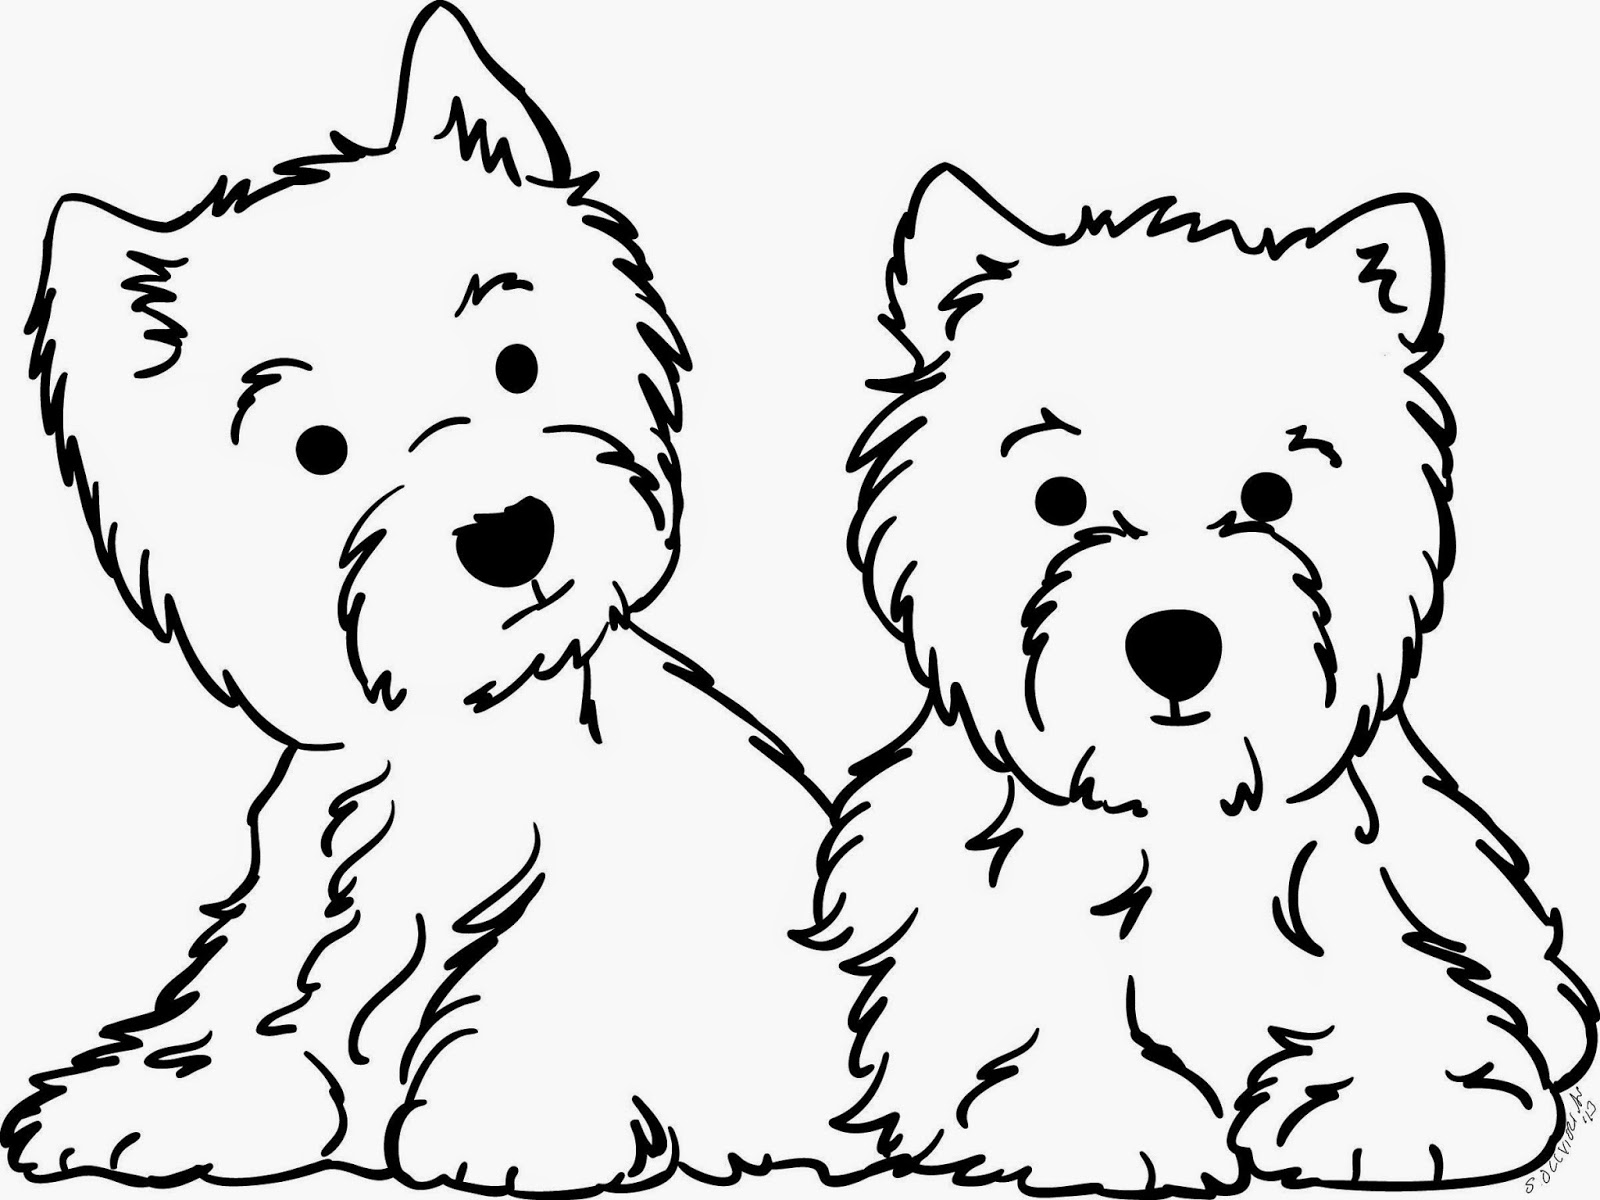 Stolen Art Work Debacle Continues